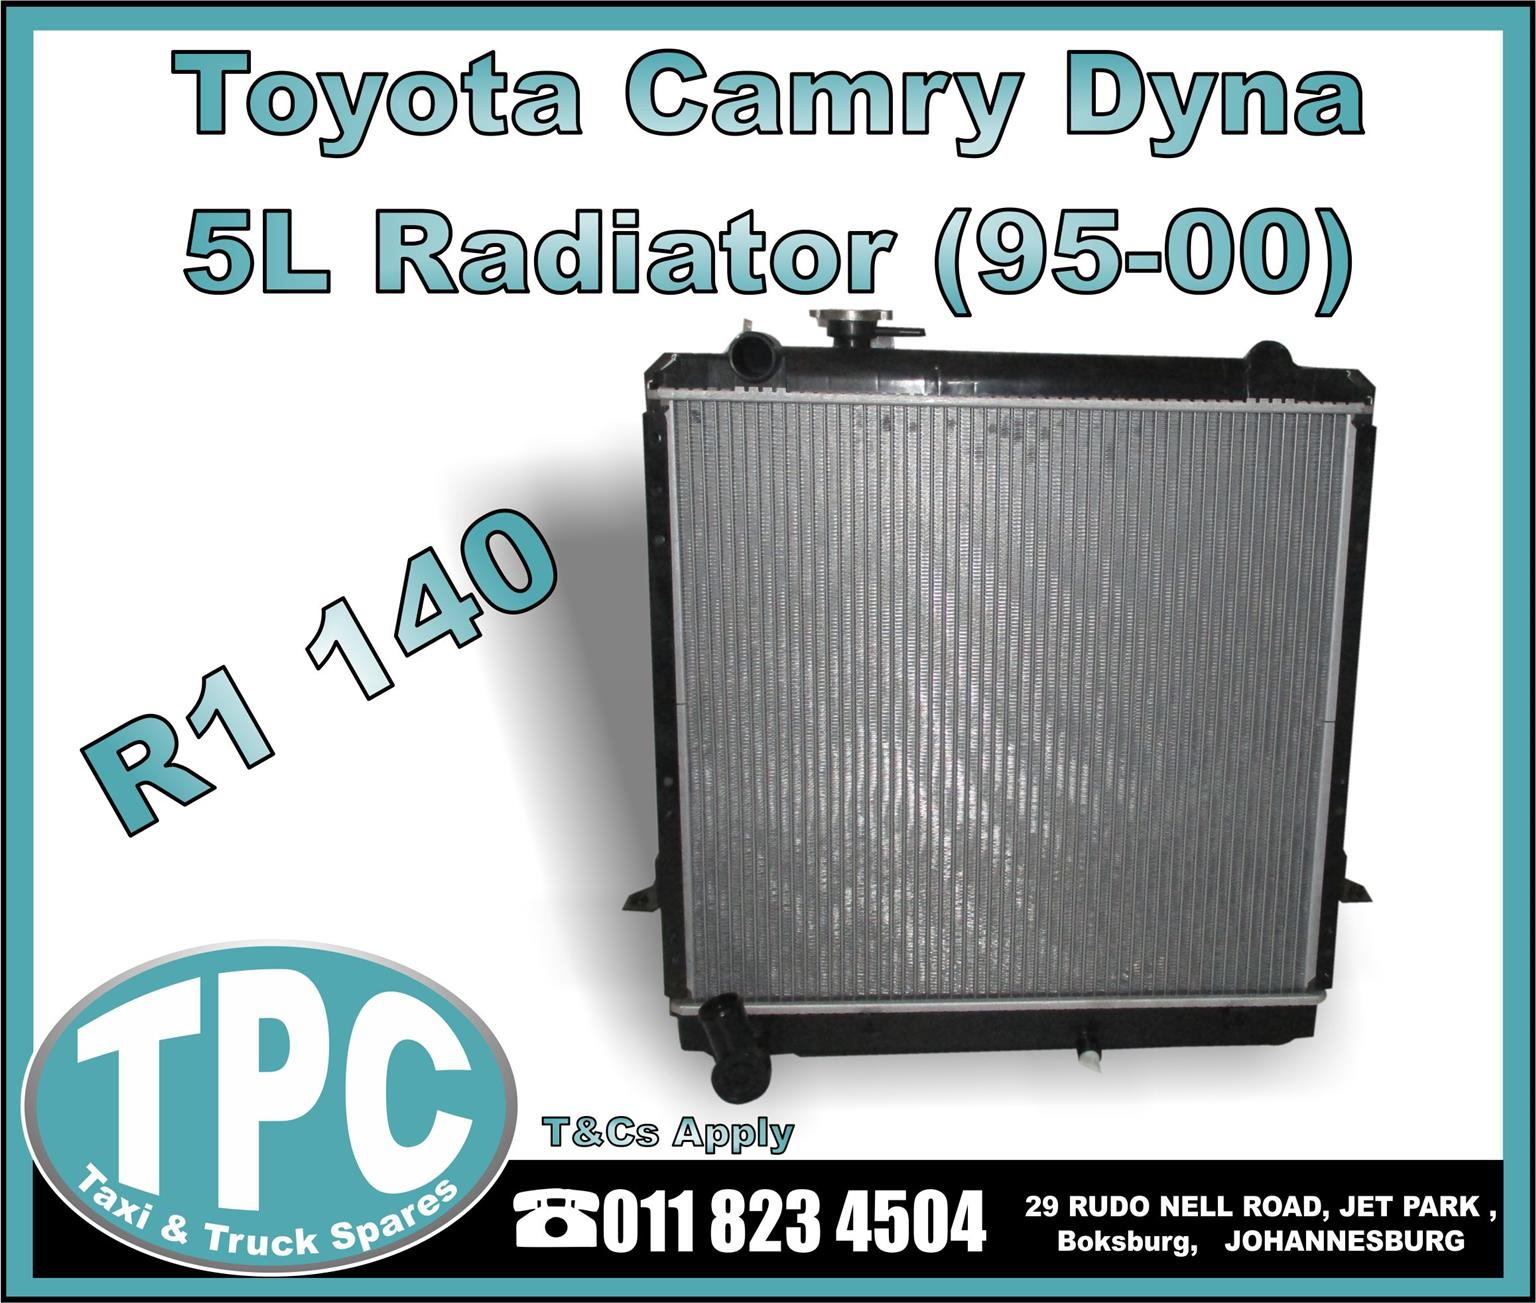 Toyota Camry Dyna 5L Radiator - 95-00 - New Replacement Truck Parts - TPC.